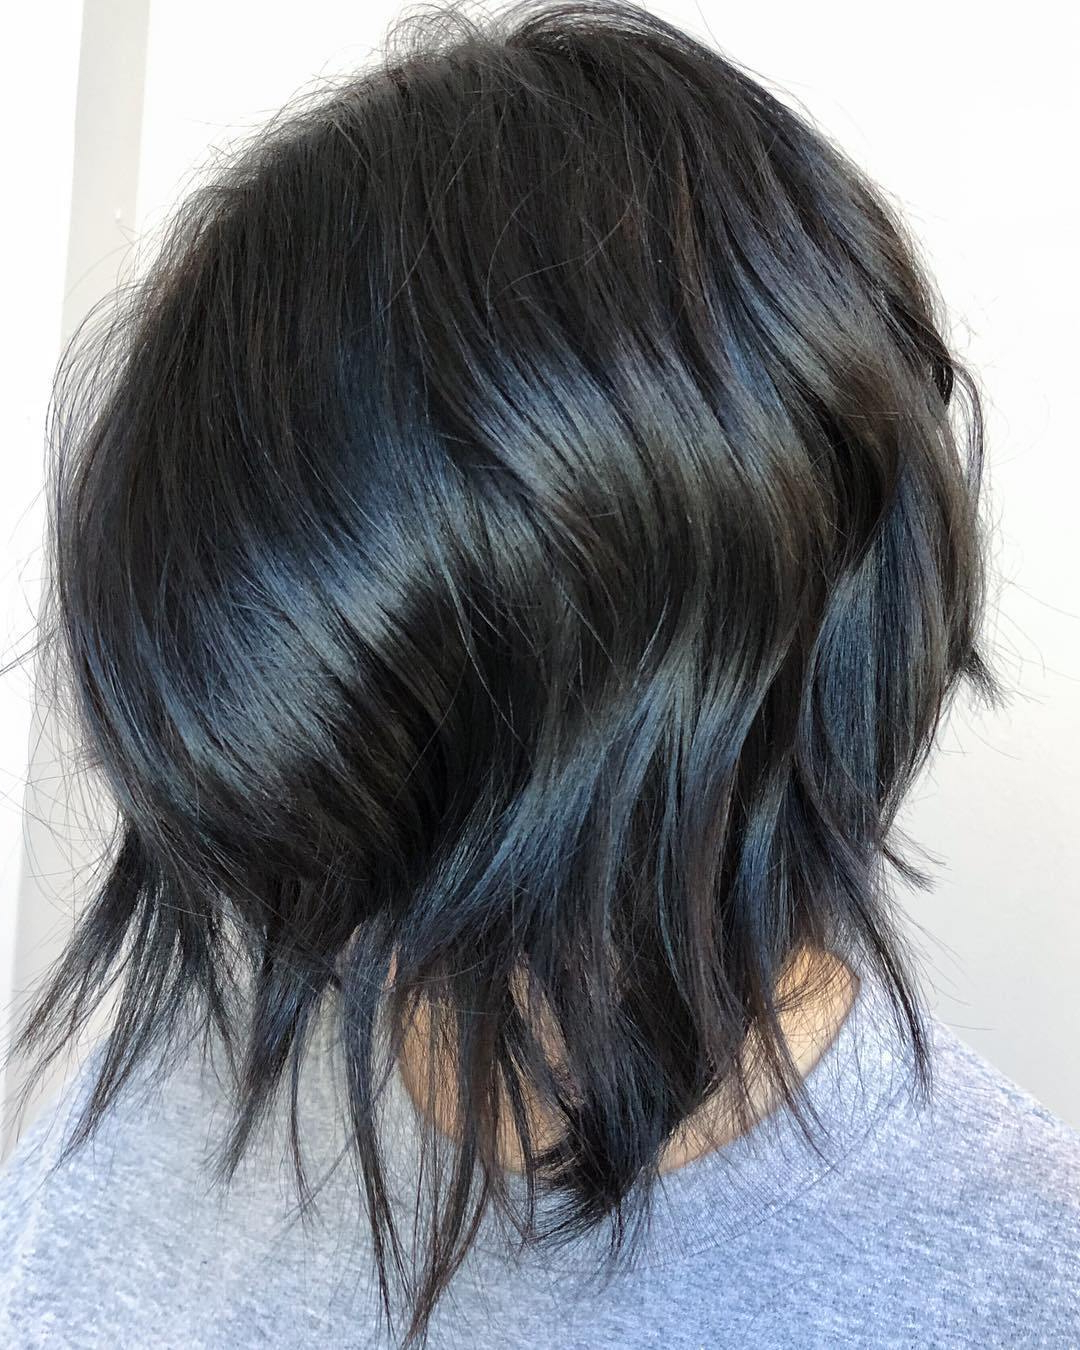 50 Inverted Bob Haircuts That Are Uber Fashionable – Hair With Steeply Angled Razored Asymmetrical Bob Hairstyles (View 6 of 20)